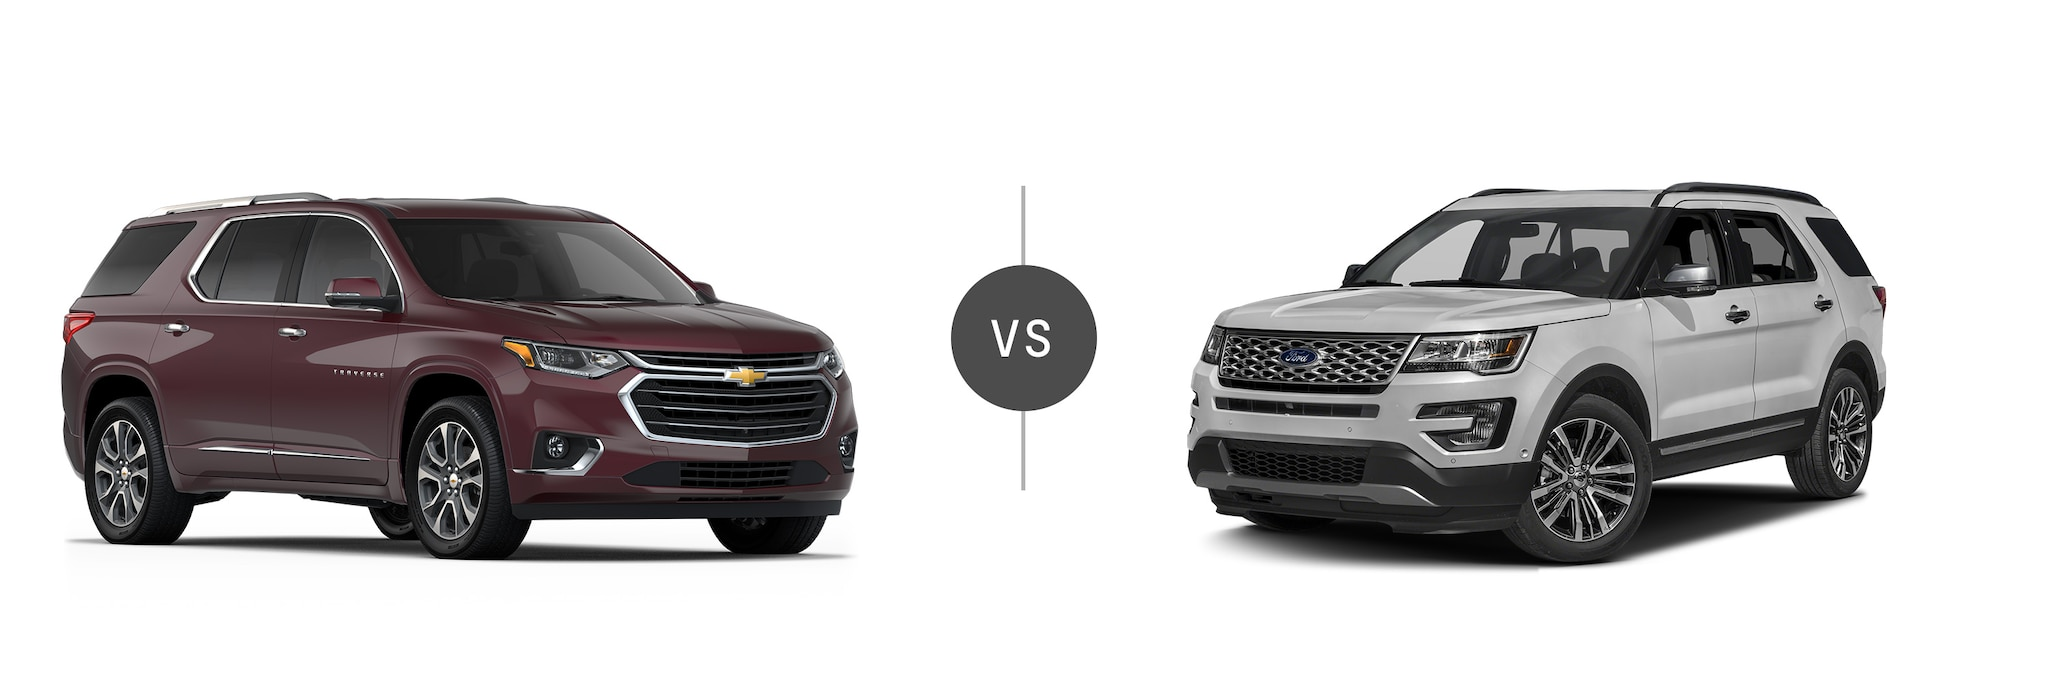 2018 Chevrolet Traverse and 2017 Ford Explorer